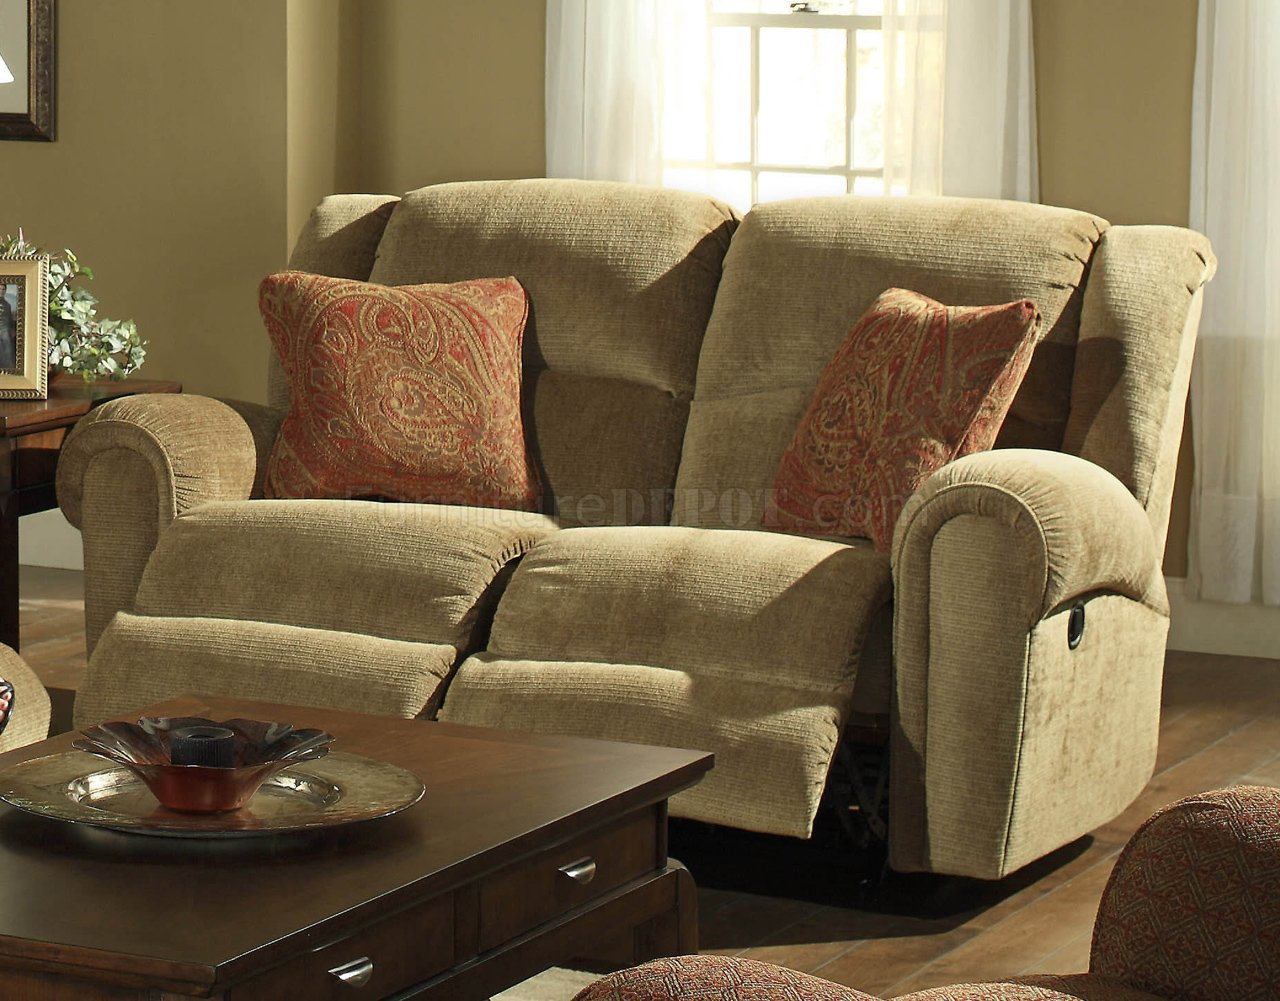 Havana fabric modern grove park reclining sofa loveseat set Fabric sofas and loveseats